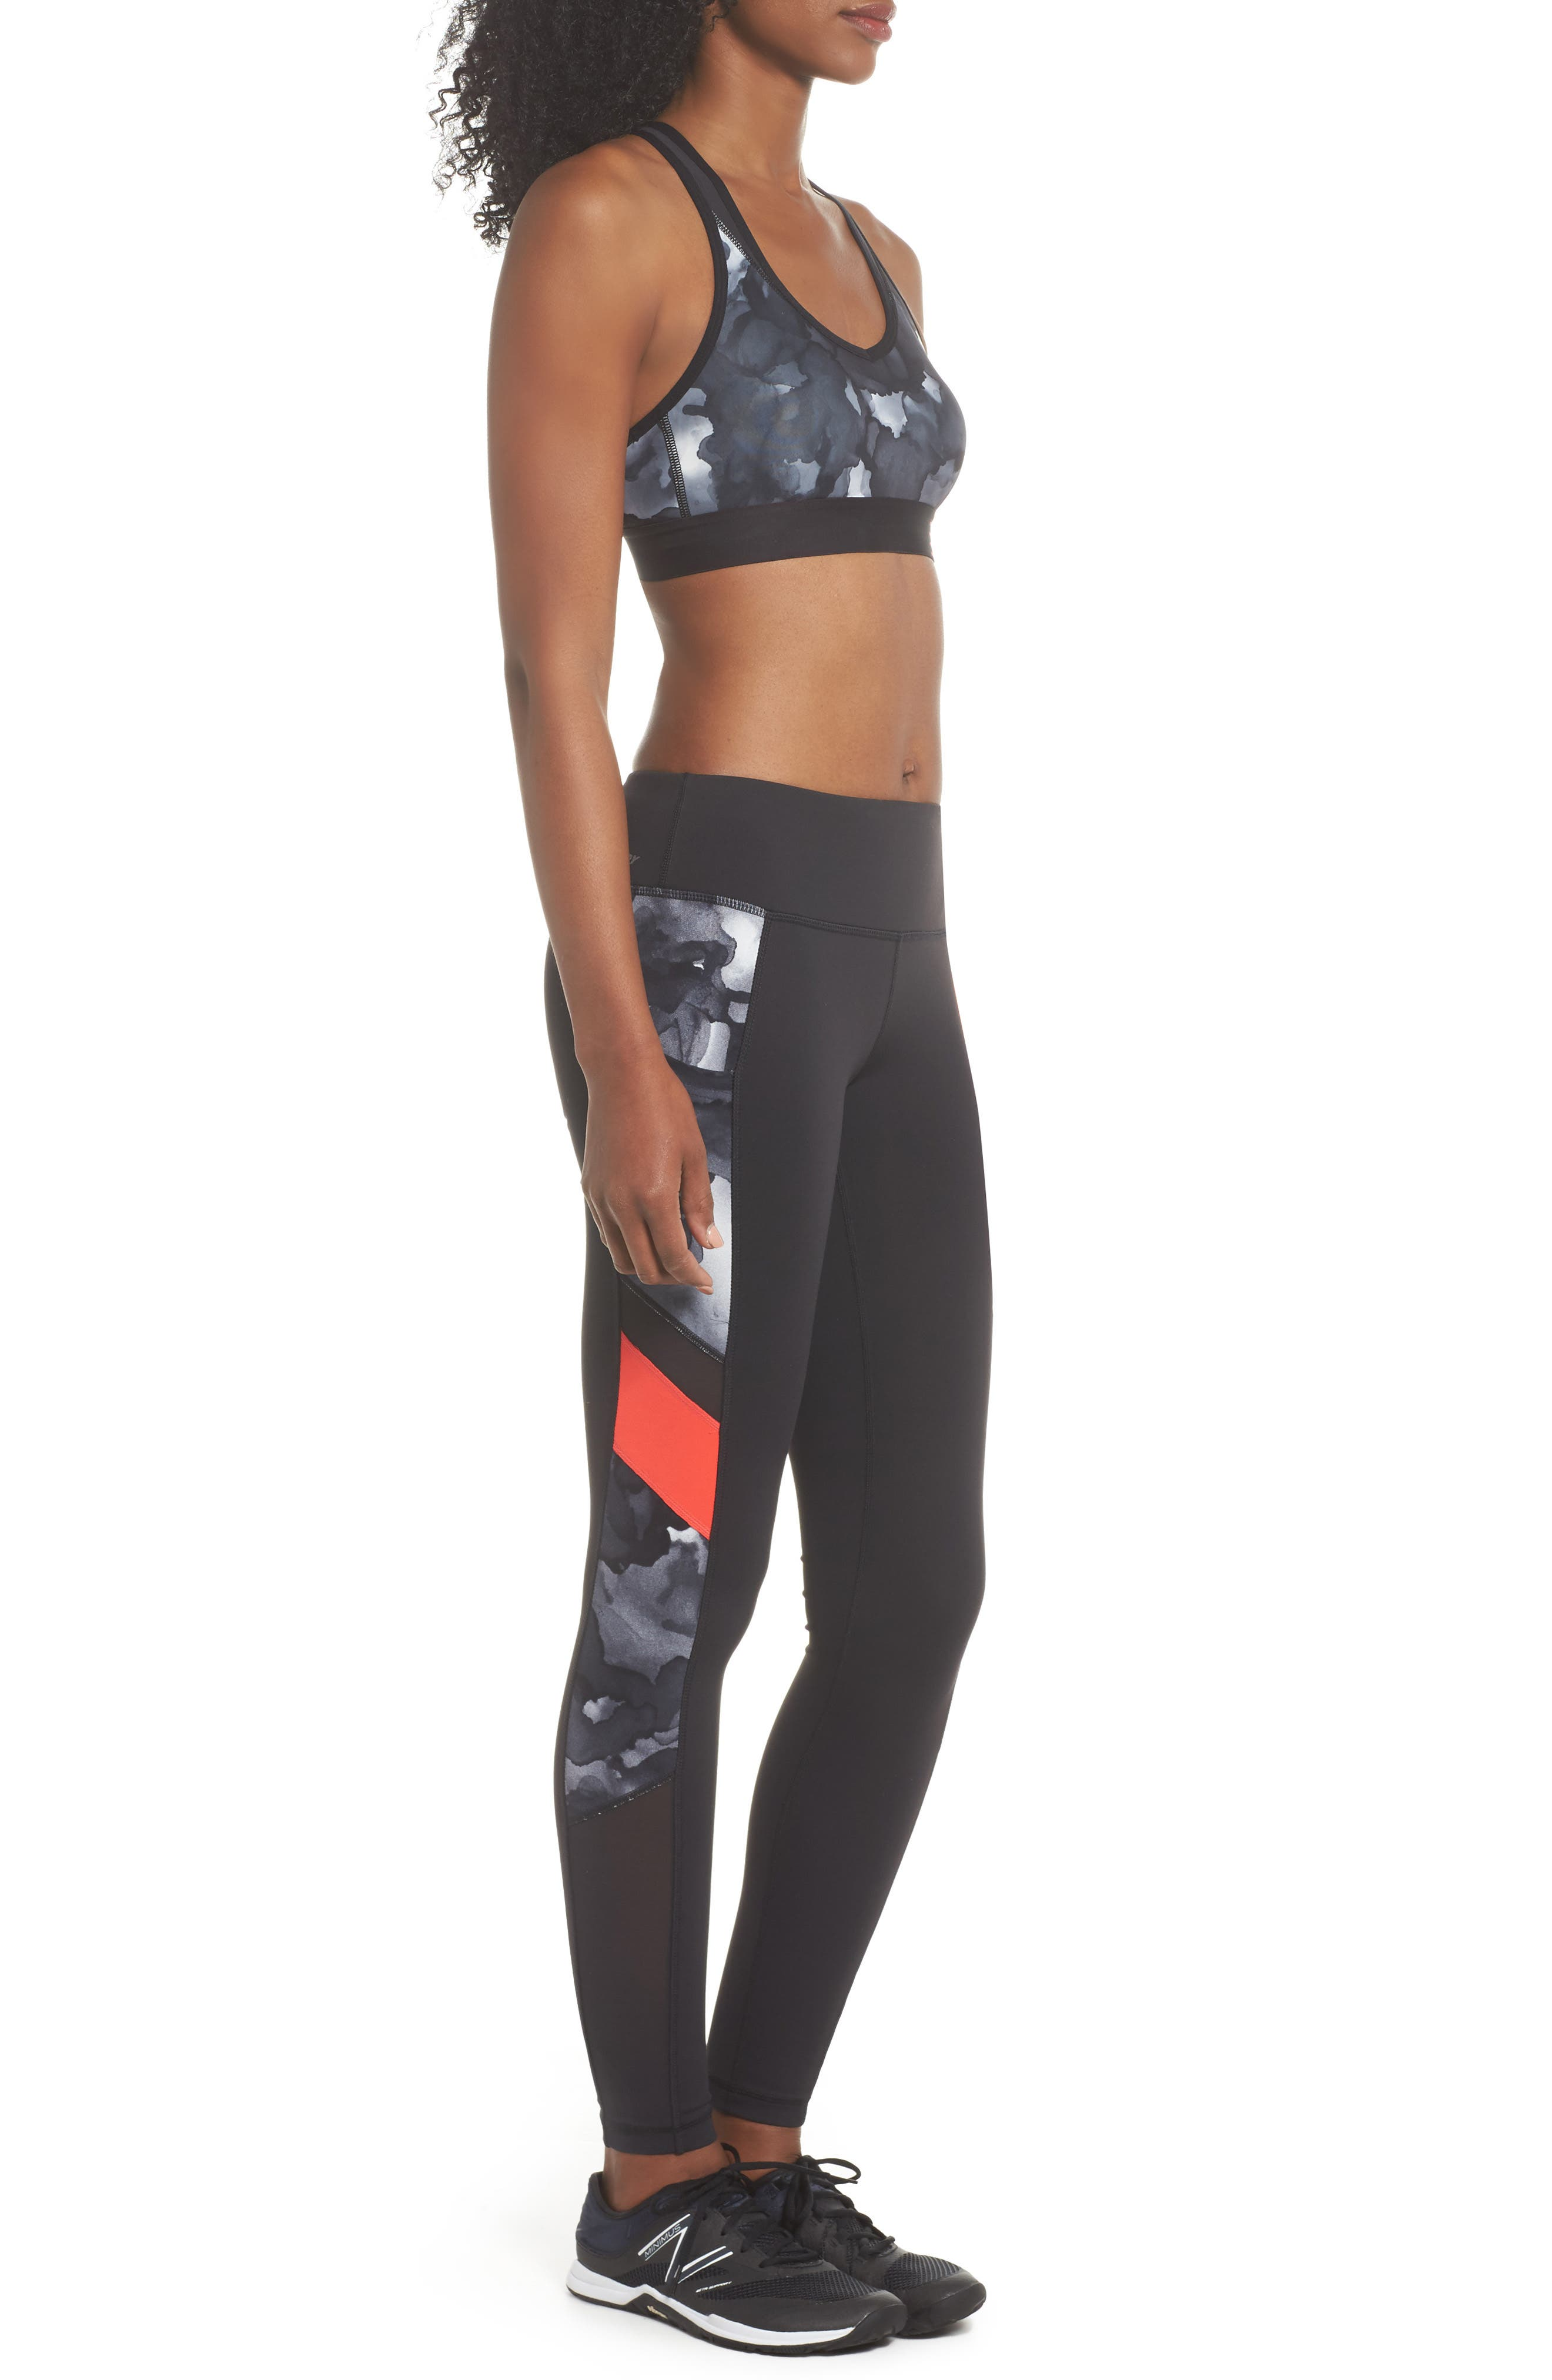 Pace Print Sports Bra,                             Alternate thumbnail 10, color,                             035